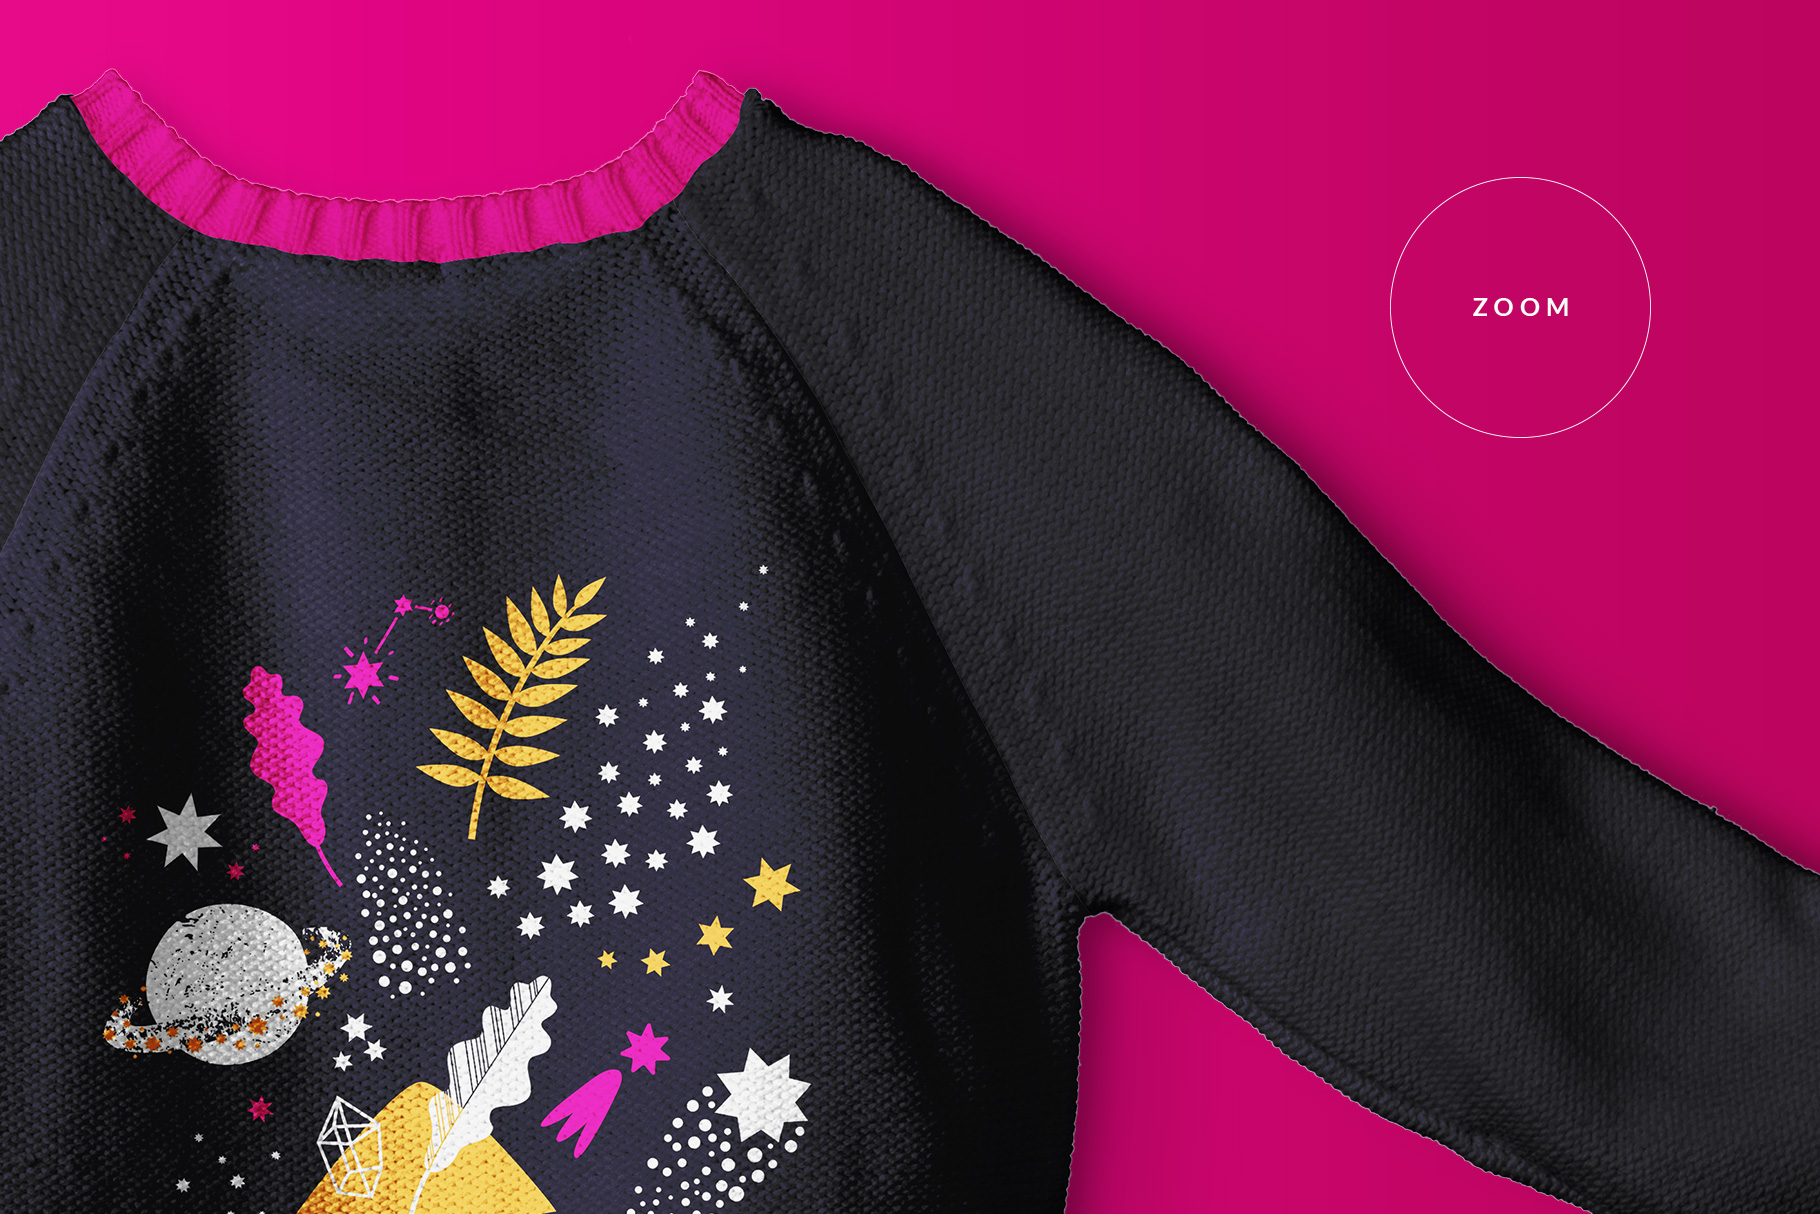 zoomed in image of the knitted kids jumper mockup